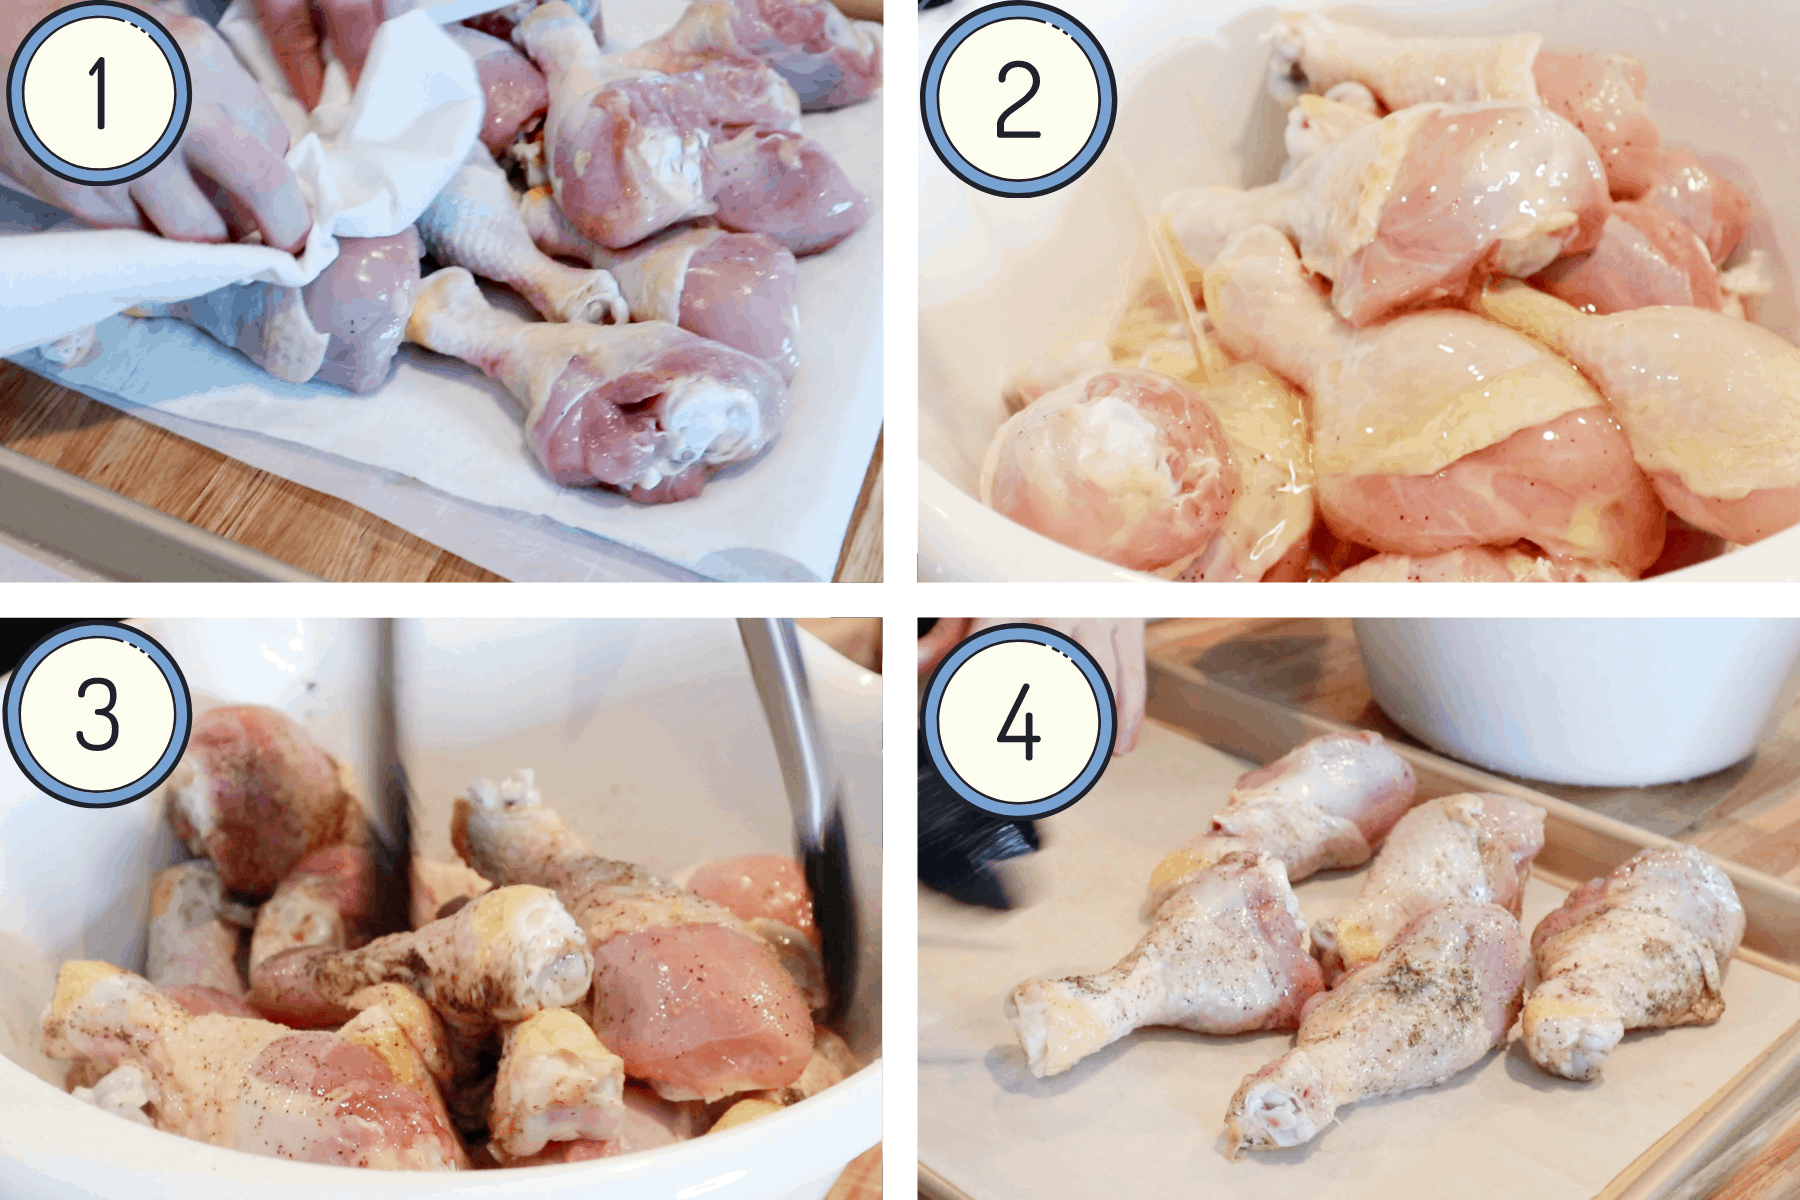 Process shot of how to prepare drumsticks for baking